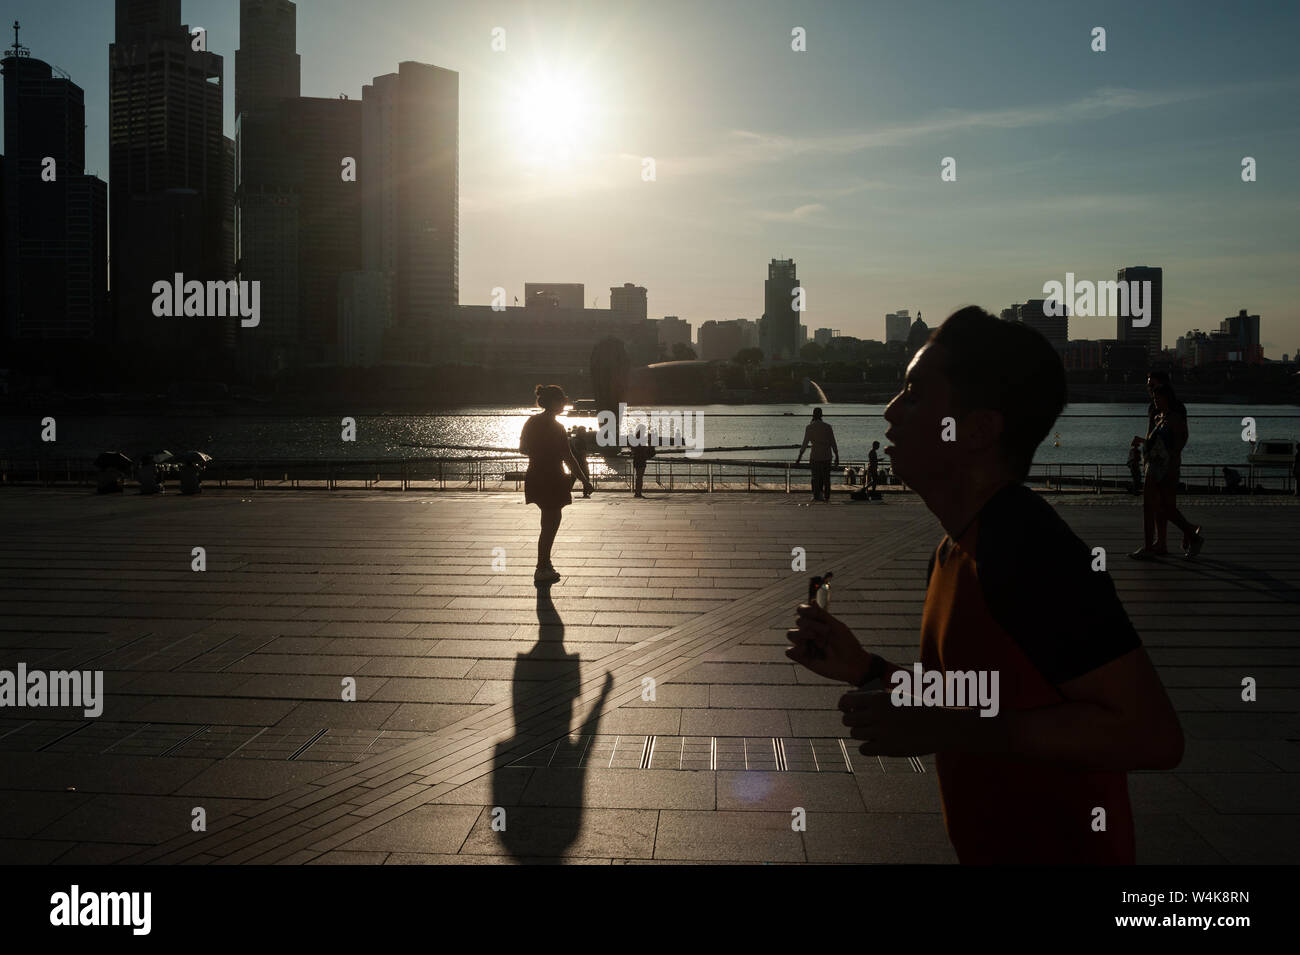 19.07.2019, Singapore, Republic of Singapore, Asia - People at the waterfront in Marina Bay with the city skyline of the central business district. Stock Photo